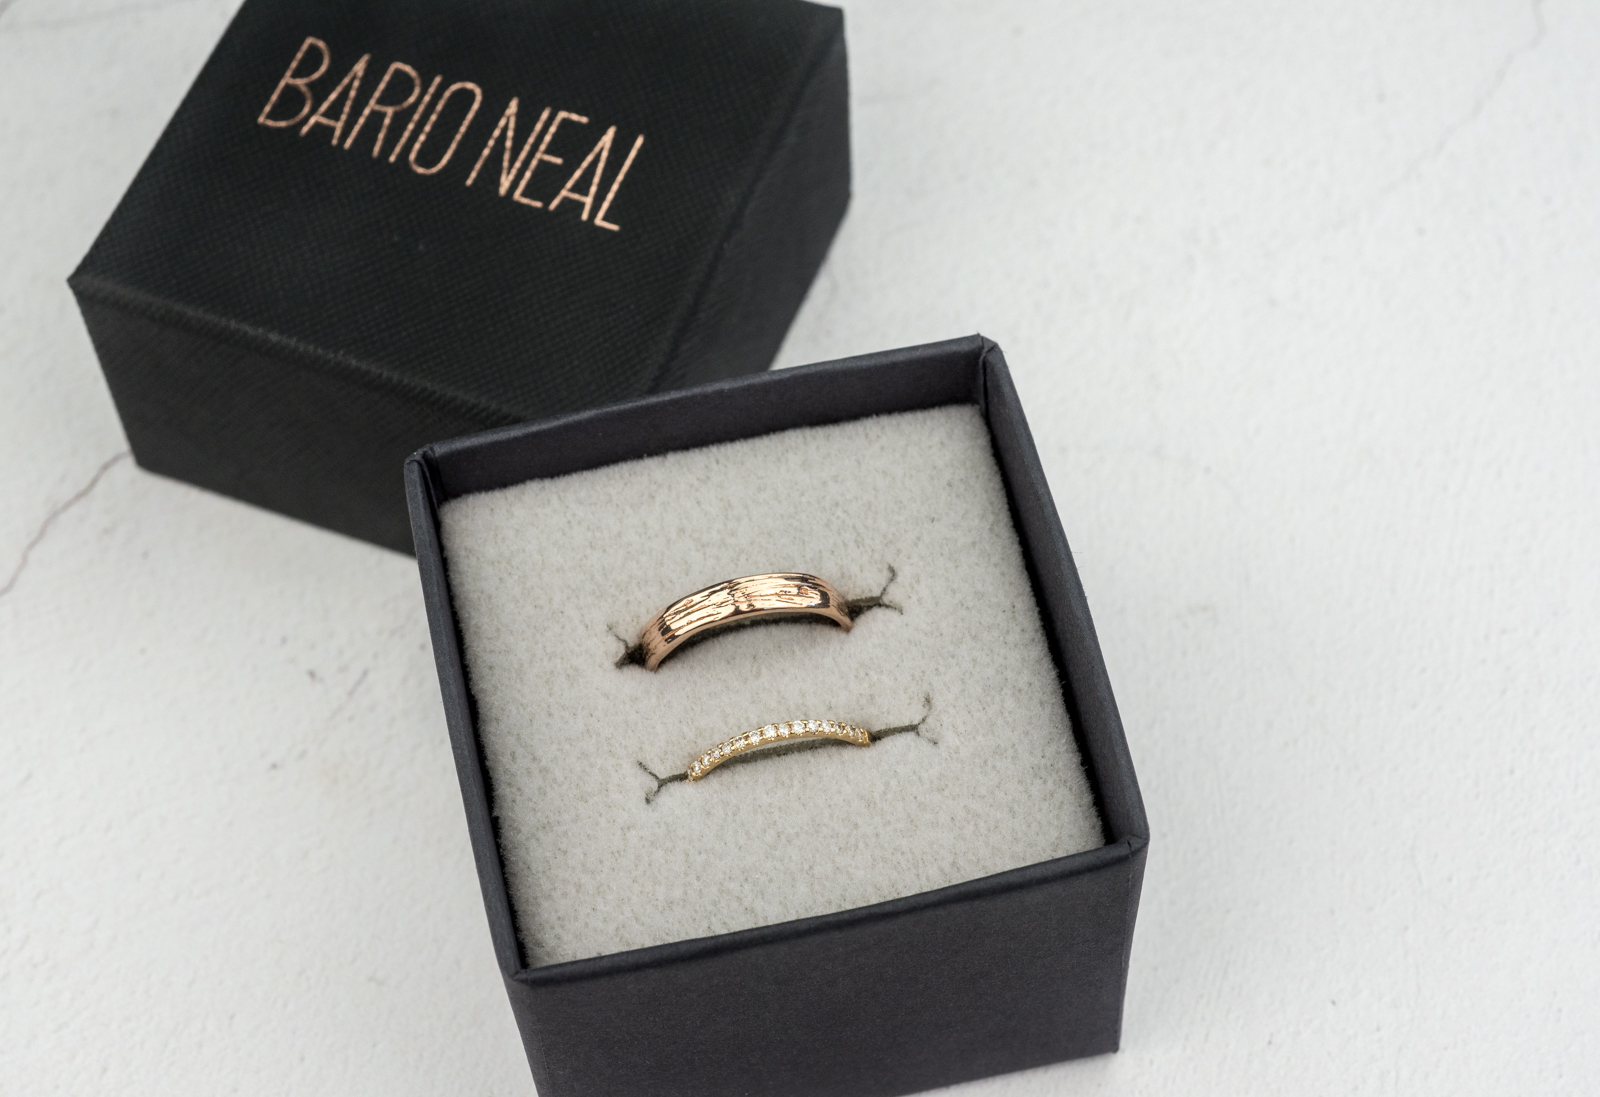 Quill Wedding B and  and Half Eternity Diamond Wedding B and in Bario Neal Box